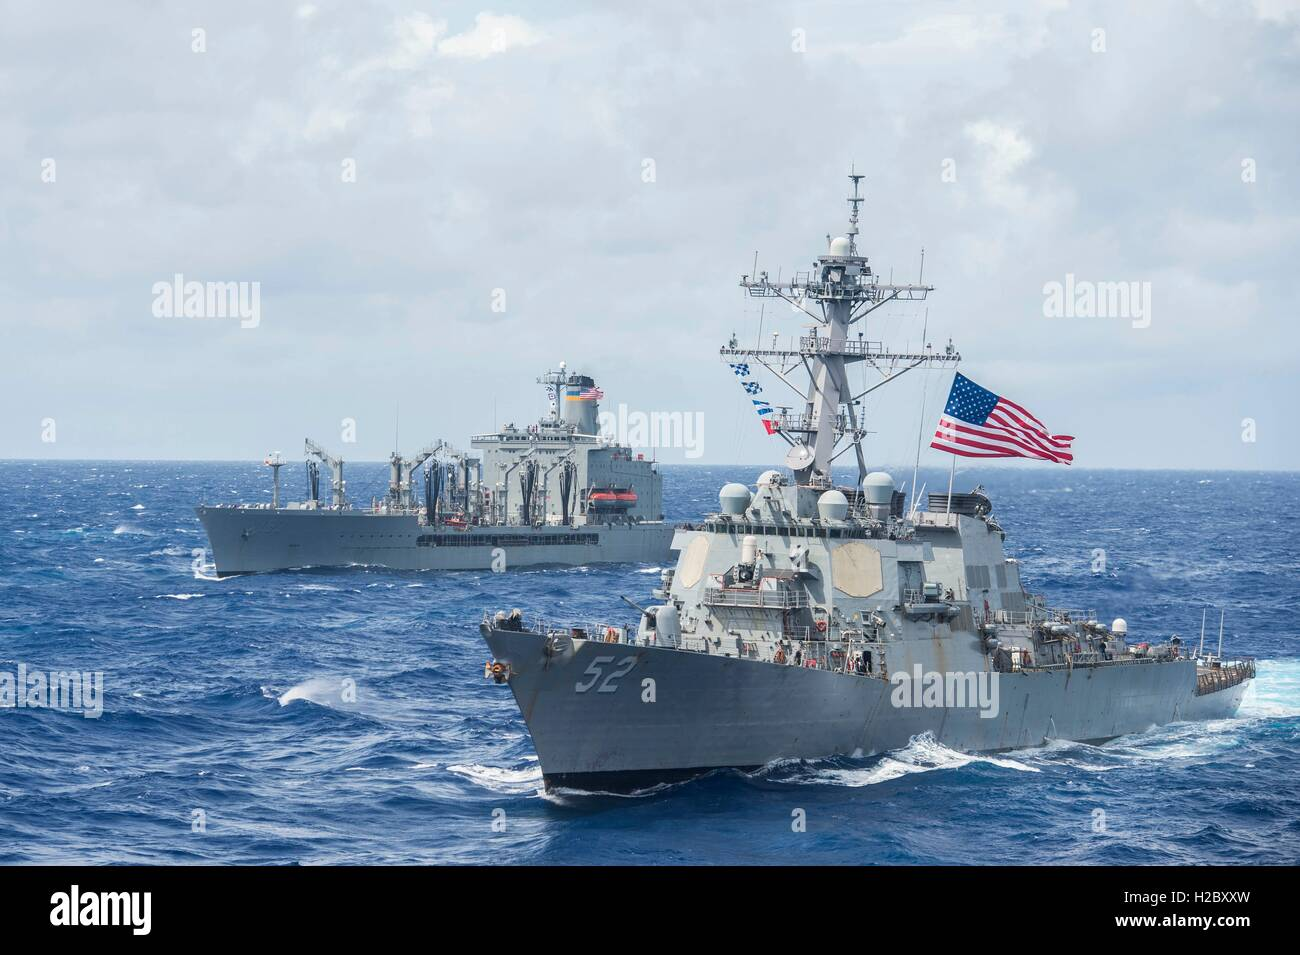 The USN Forrest Sherman-class guided-missile destroyer USS Barry (right) and the Henry J. Kaiser-class fleet replenishment - Stock Image